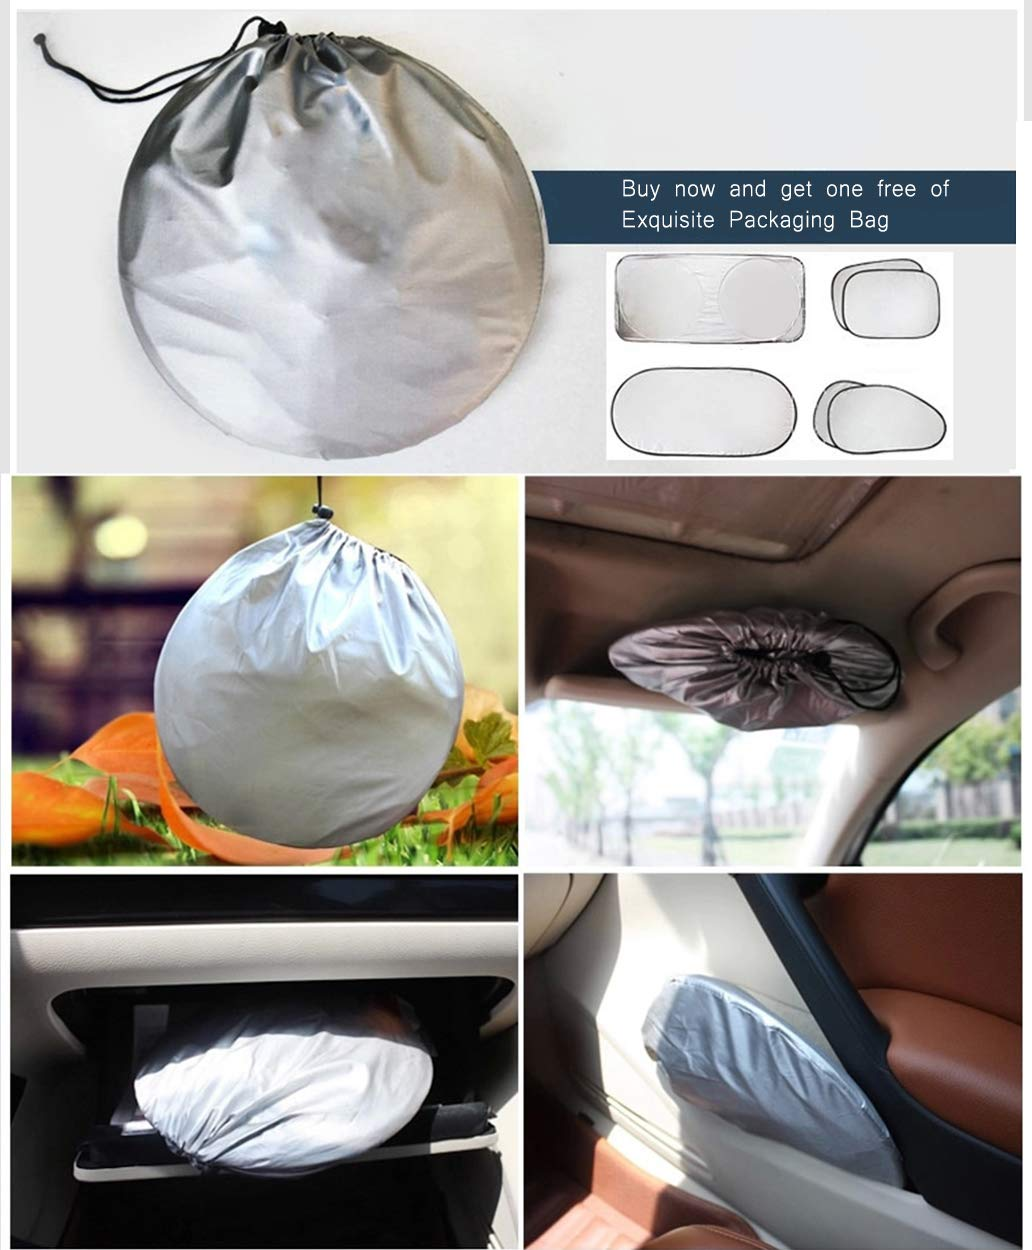 Windshield Sun Shade/Made of 210T Silver Coated Cylon/Effective Insulation/Fits Windshields of Various Sizes (Standard 59 x 31 inches) (6 Sets) by g-oo-d (Image #7)